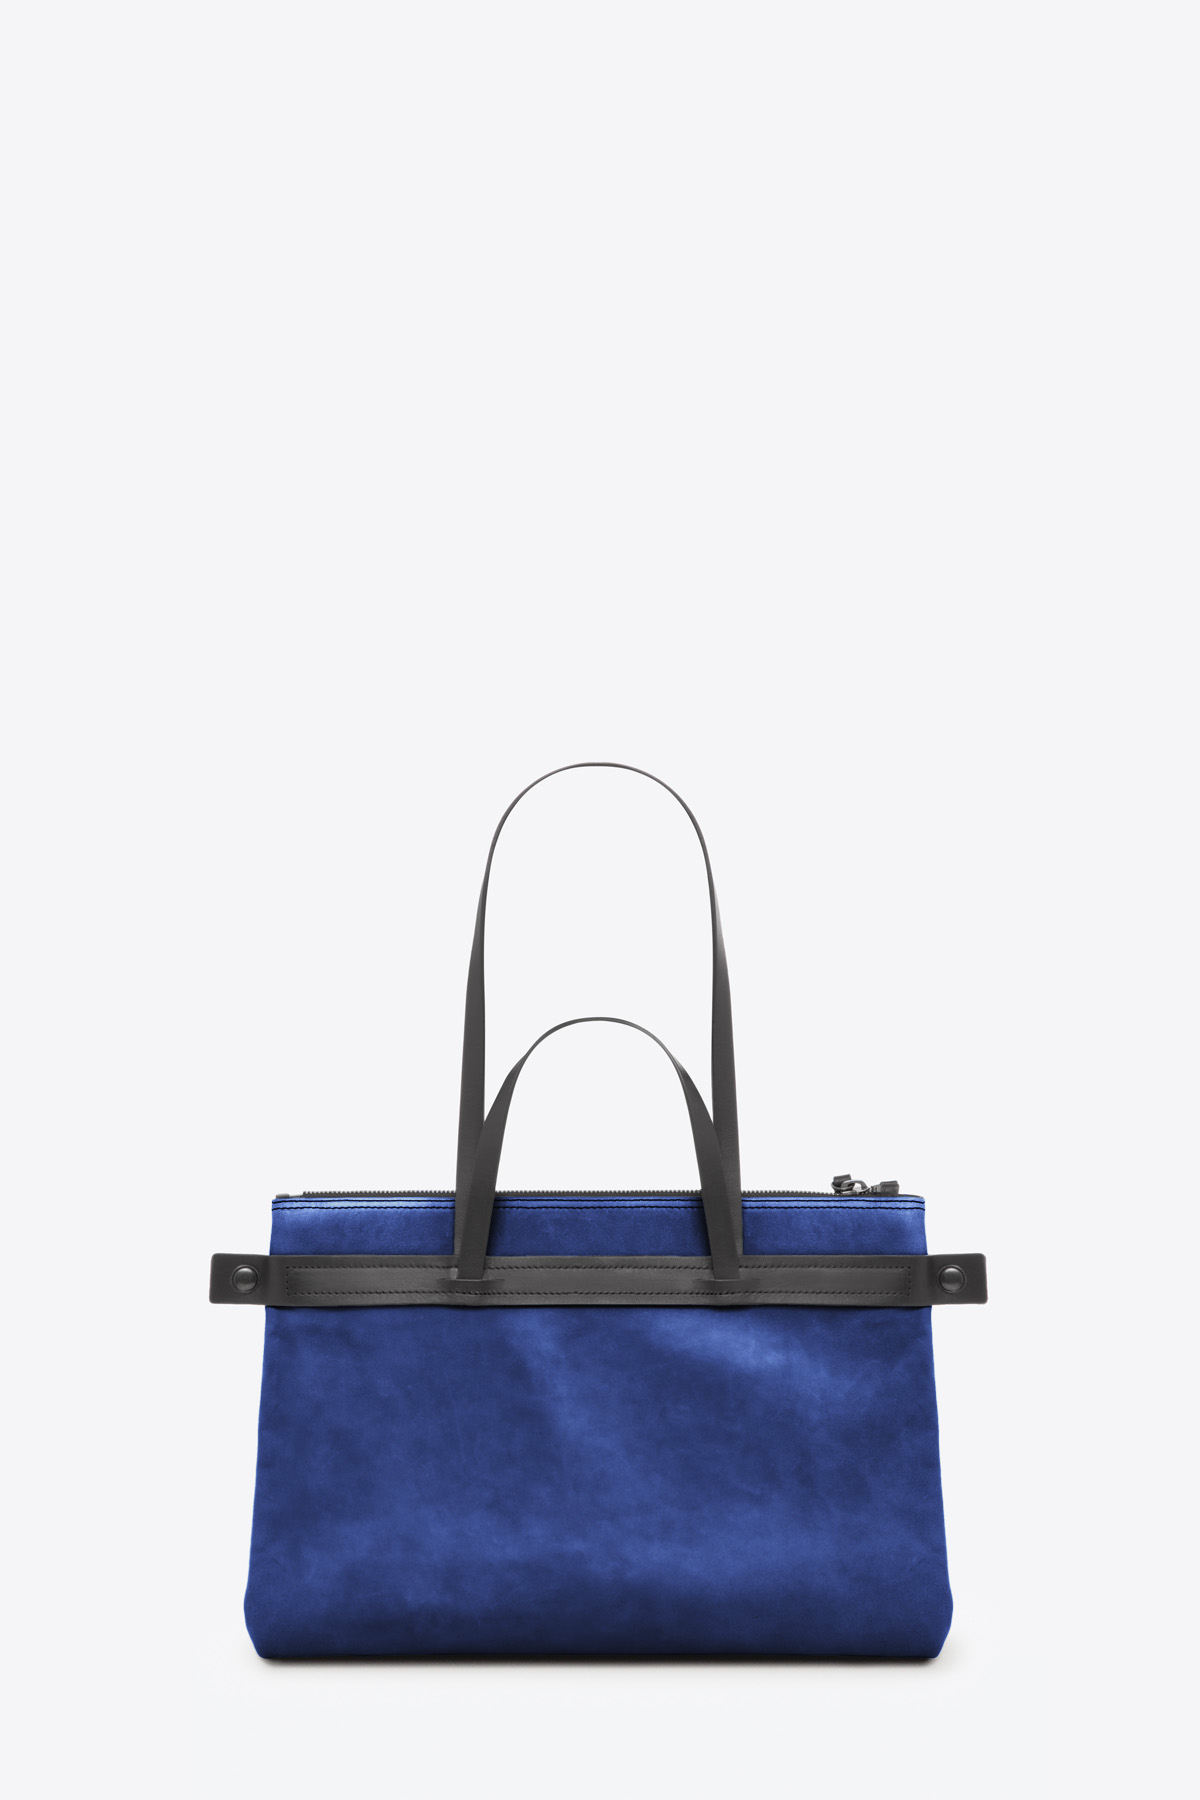 dclr007s-tote-a20-royalblue-back